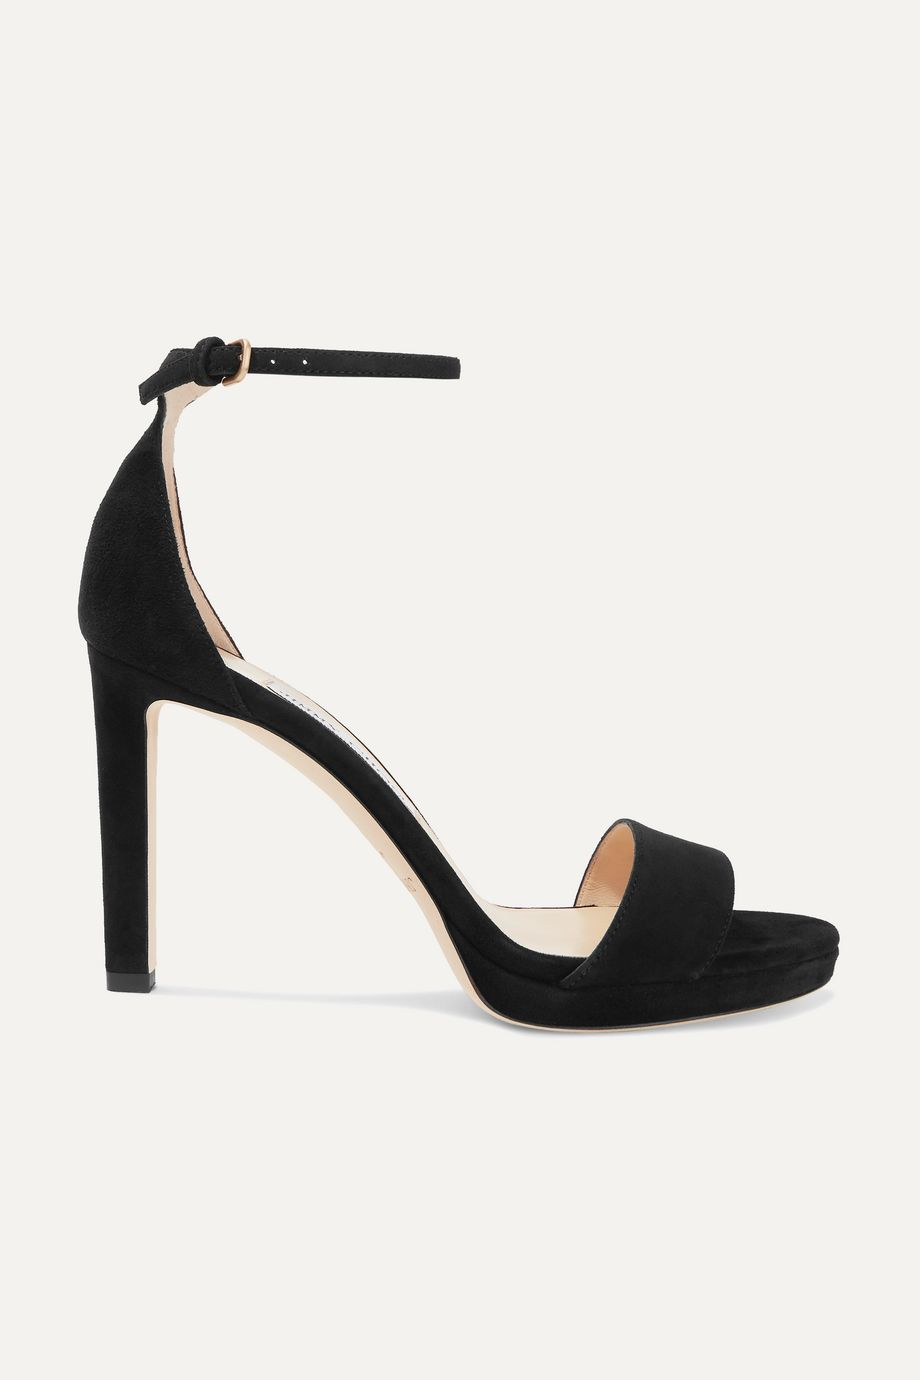 Jimmy Choo Misty 100 suede platform sandals